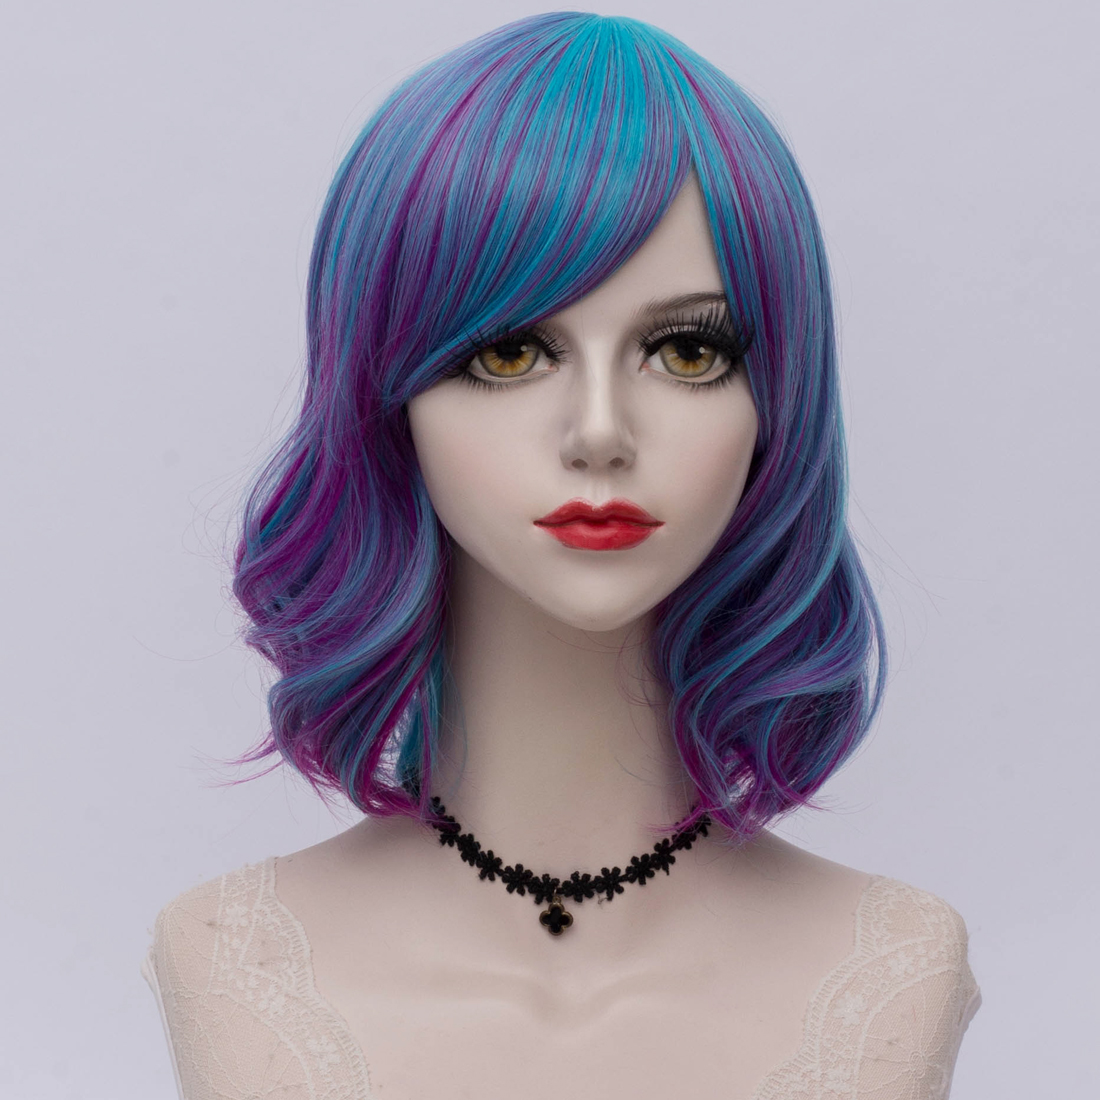 Cosplay Wigs For Bedroom Role-Play